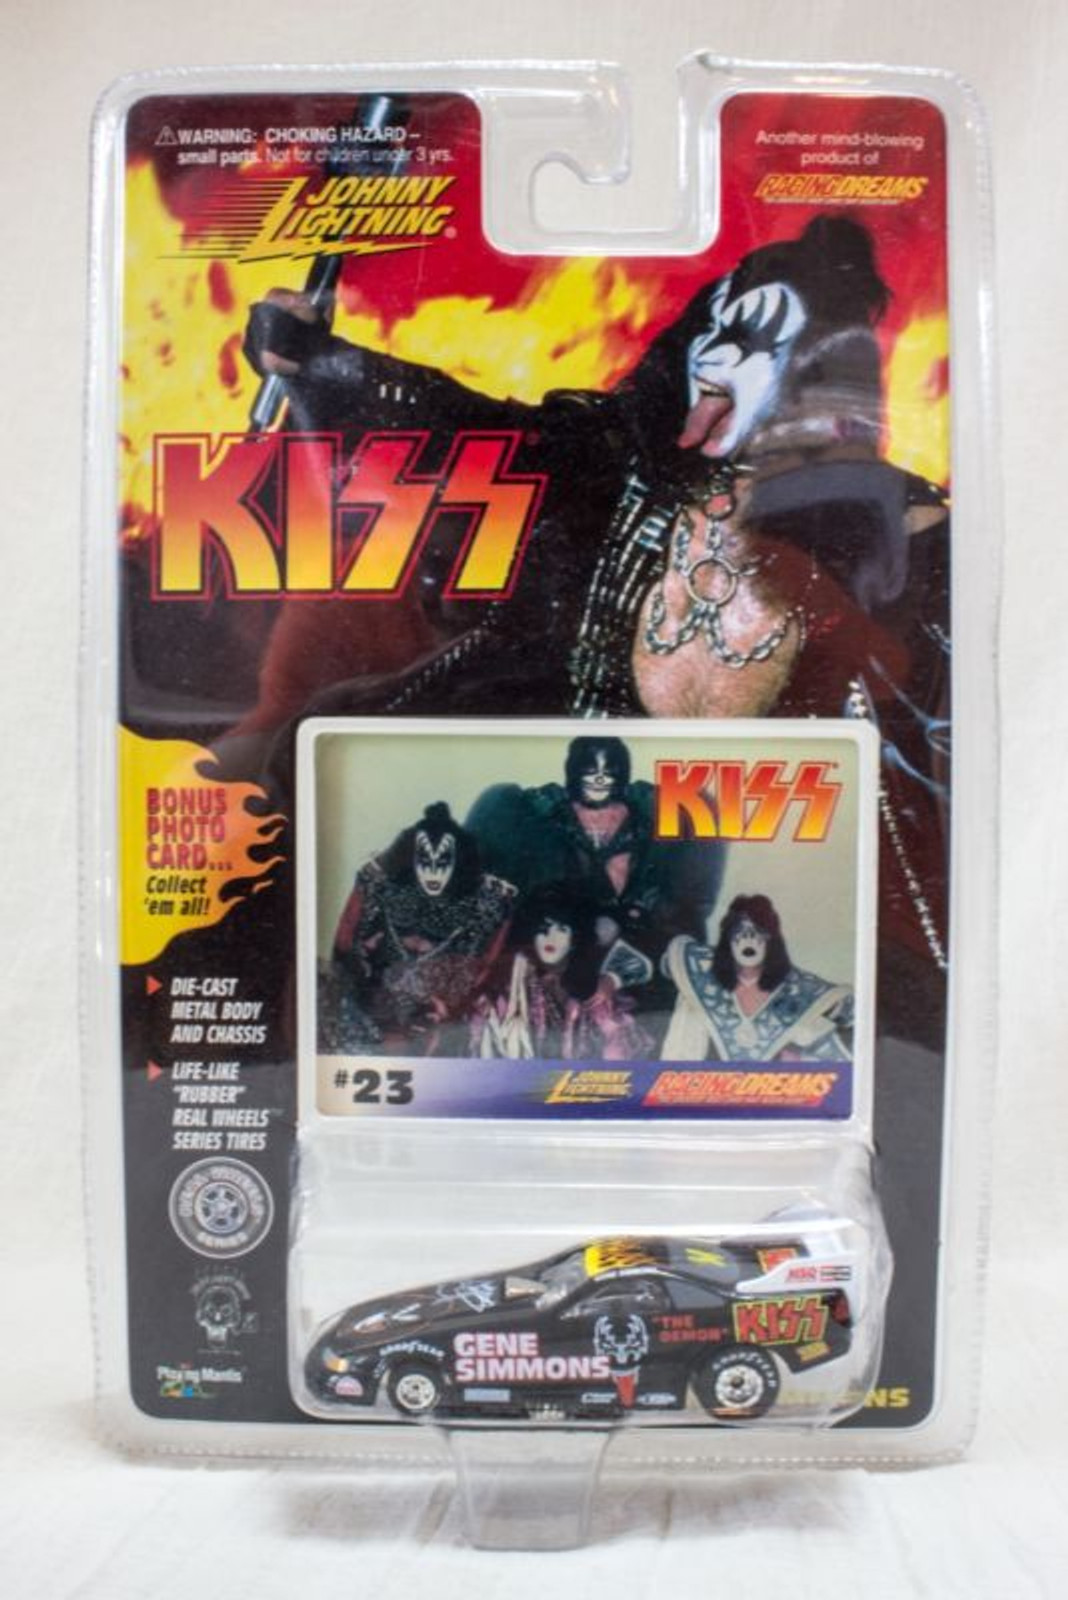 KISS Johnny Lightning Racing Dreams #23 GENE SIMMONS